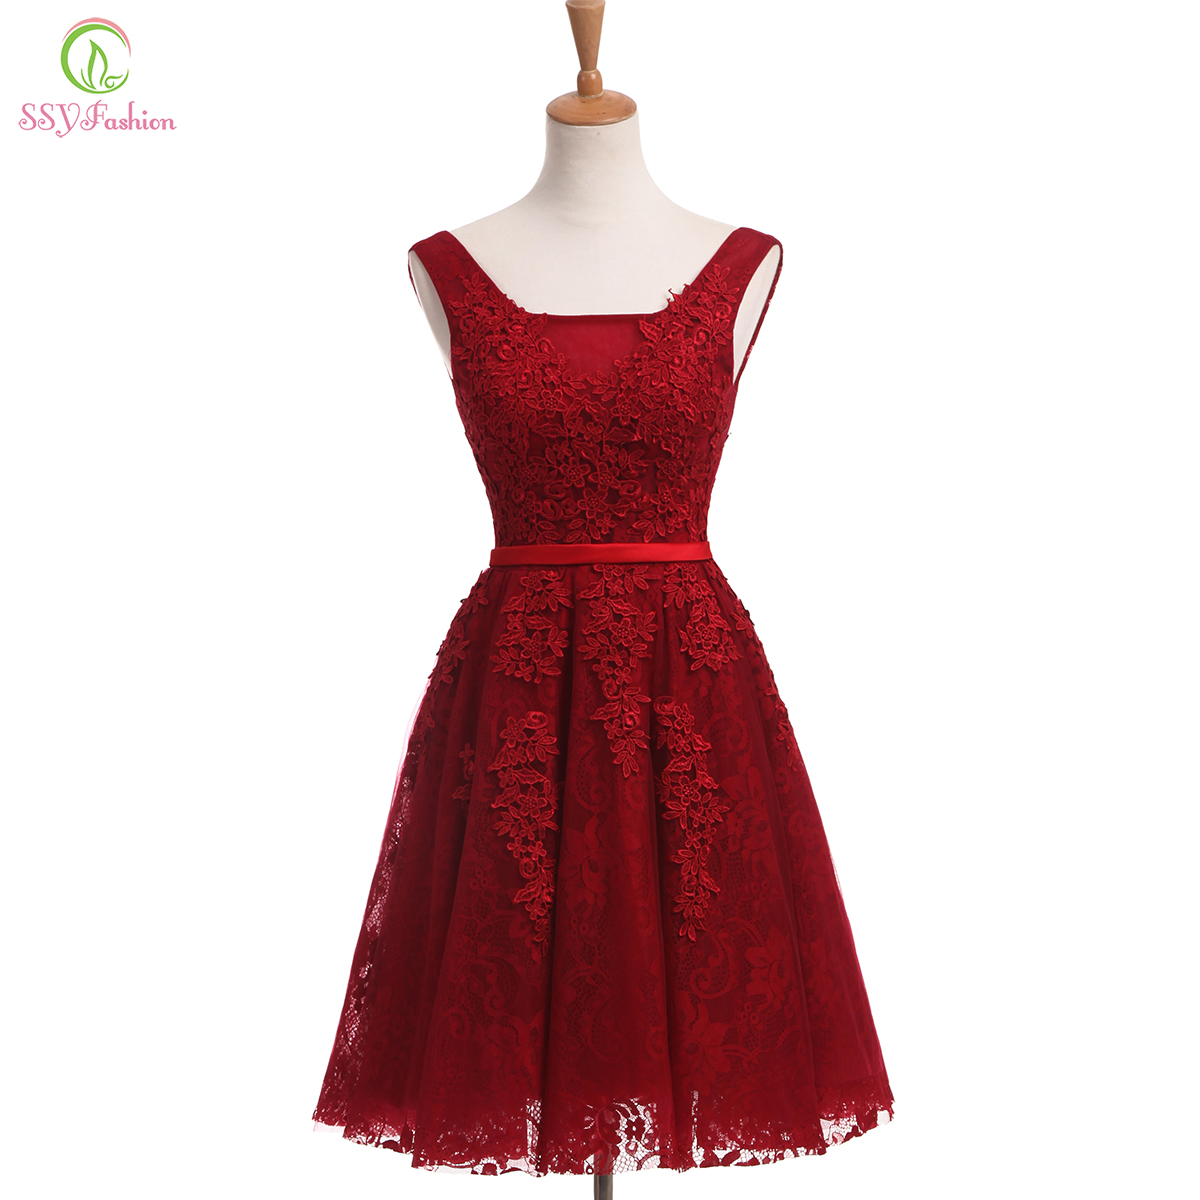 SSYFashion New The Bride Banquet Elegant Lace   Cocktail     Dress   Wine Red V-neck Sleeveless Short Knee-length Formal Party Gown